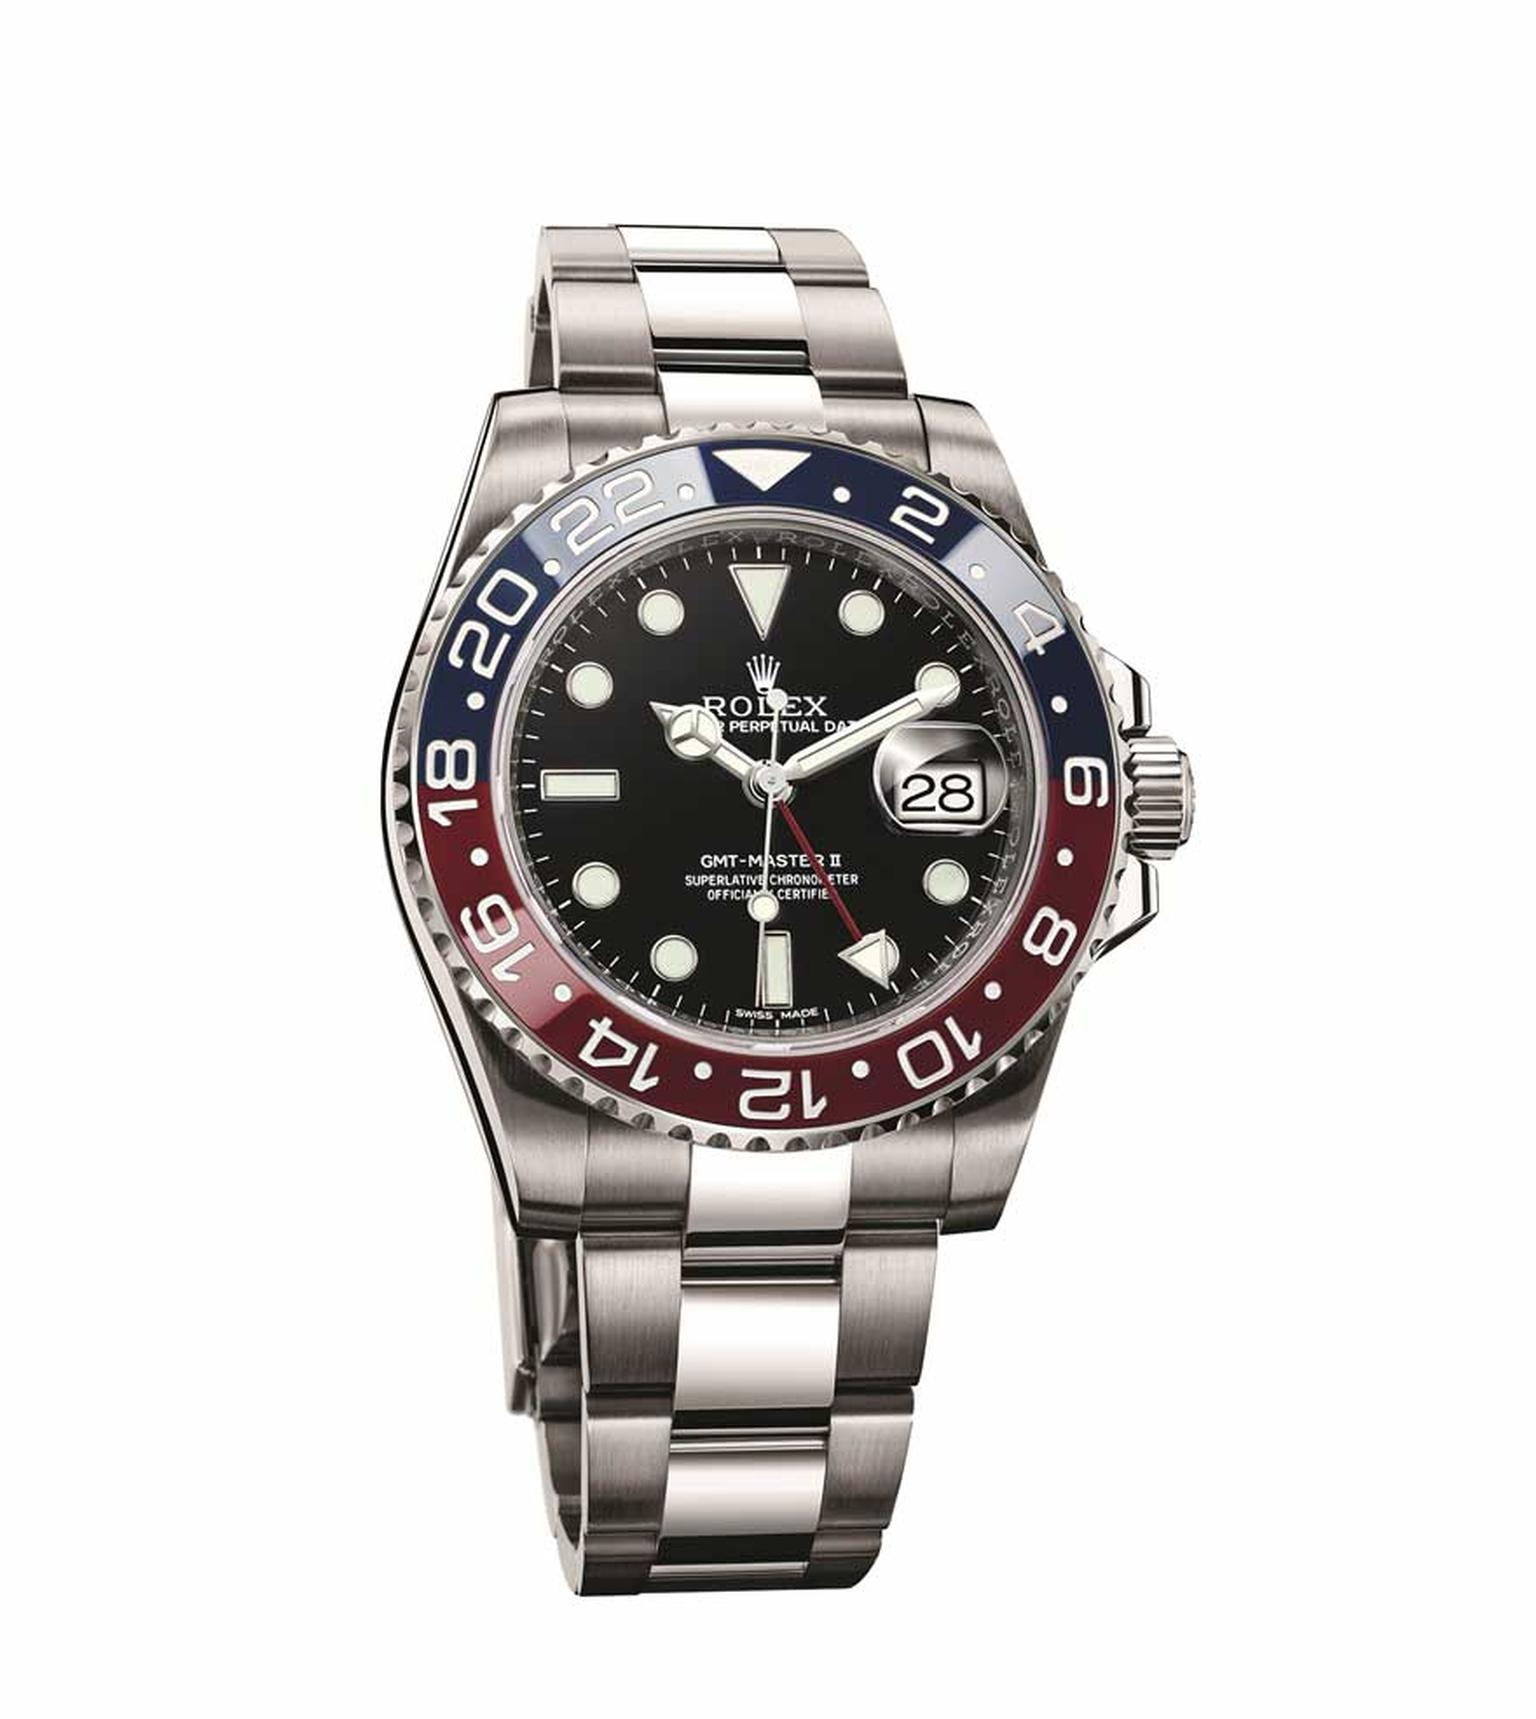 The Rolex GMT Master watch features a world first with its two-coloured red and blue 'Pepsi' Cerachrom ceramic bezel